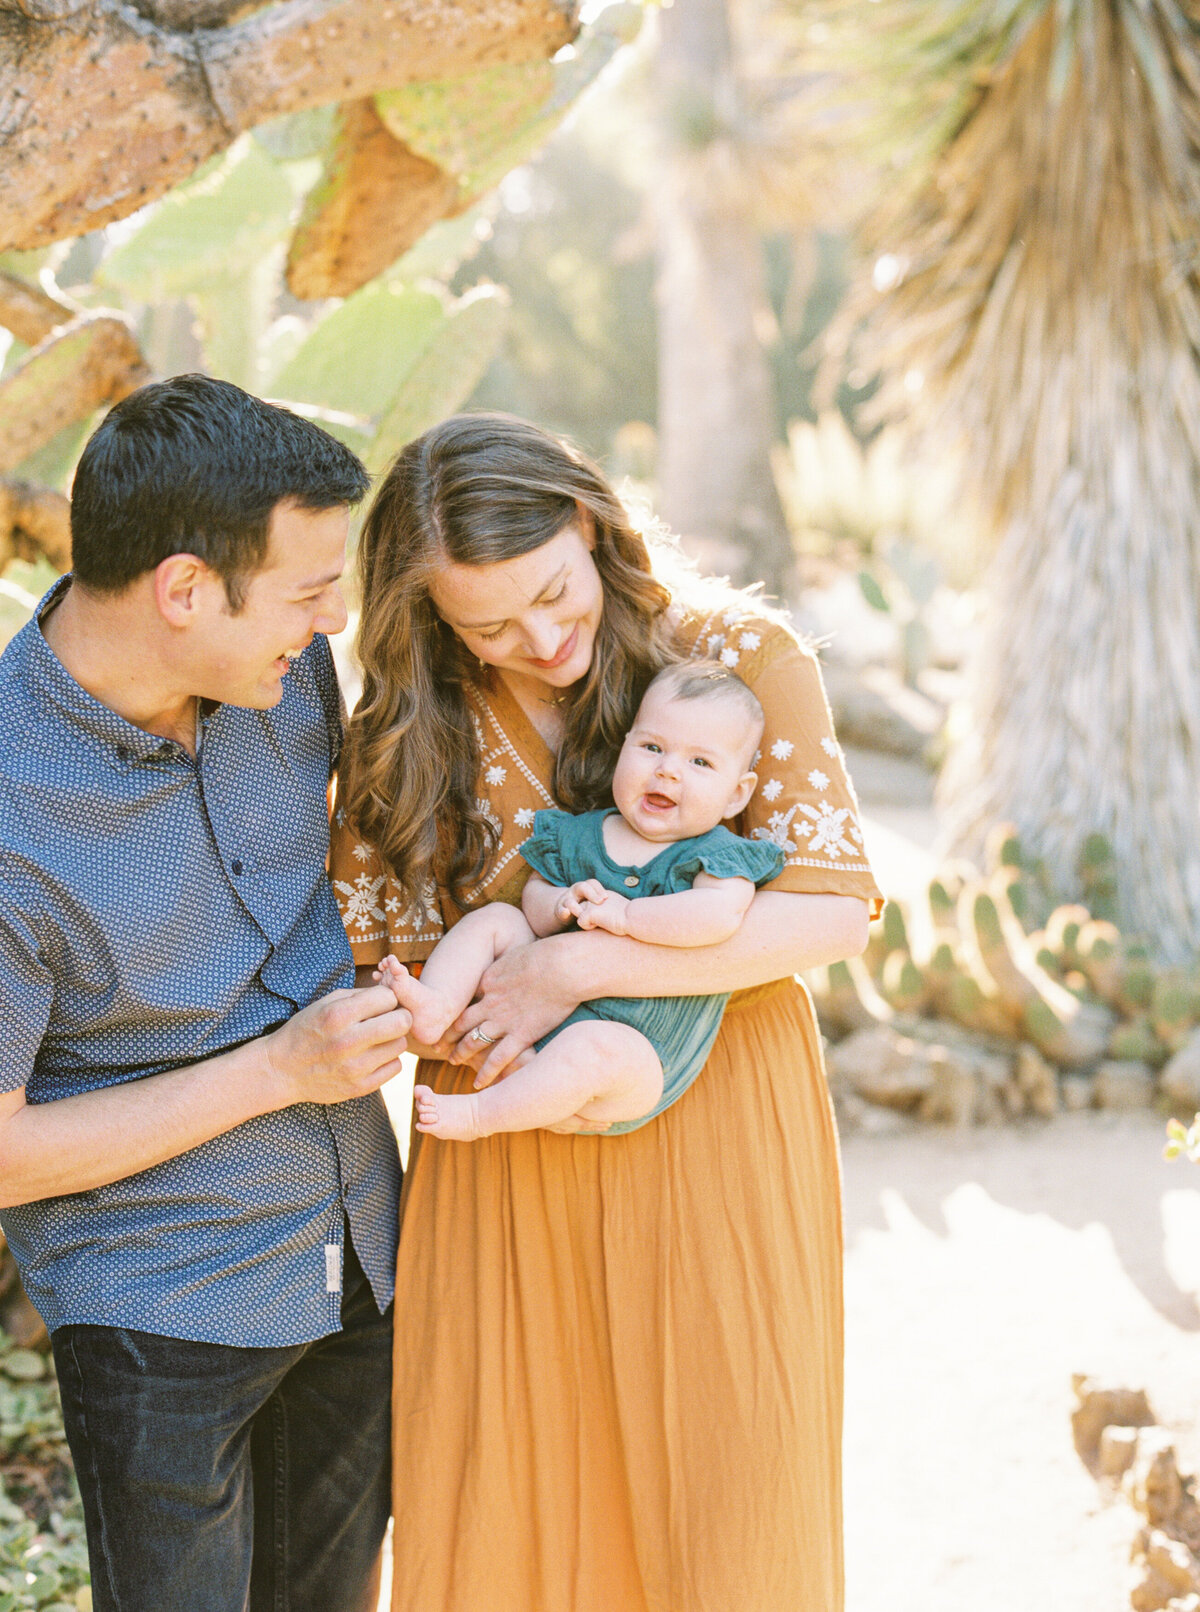 Olivia Marshall Photography- Cactus Desert Garden Family Photos-19